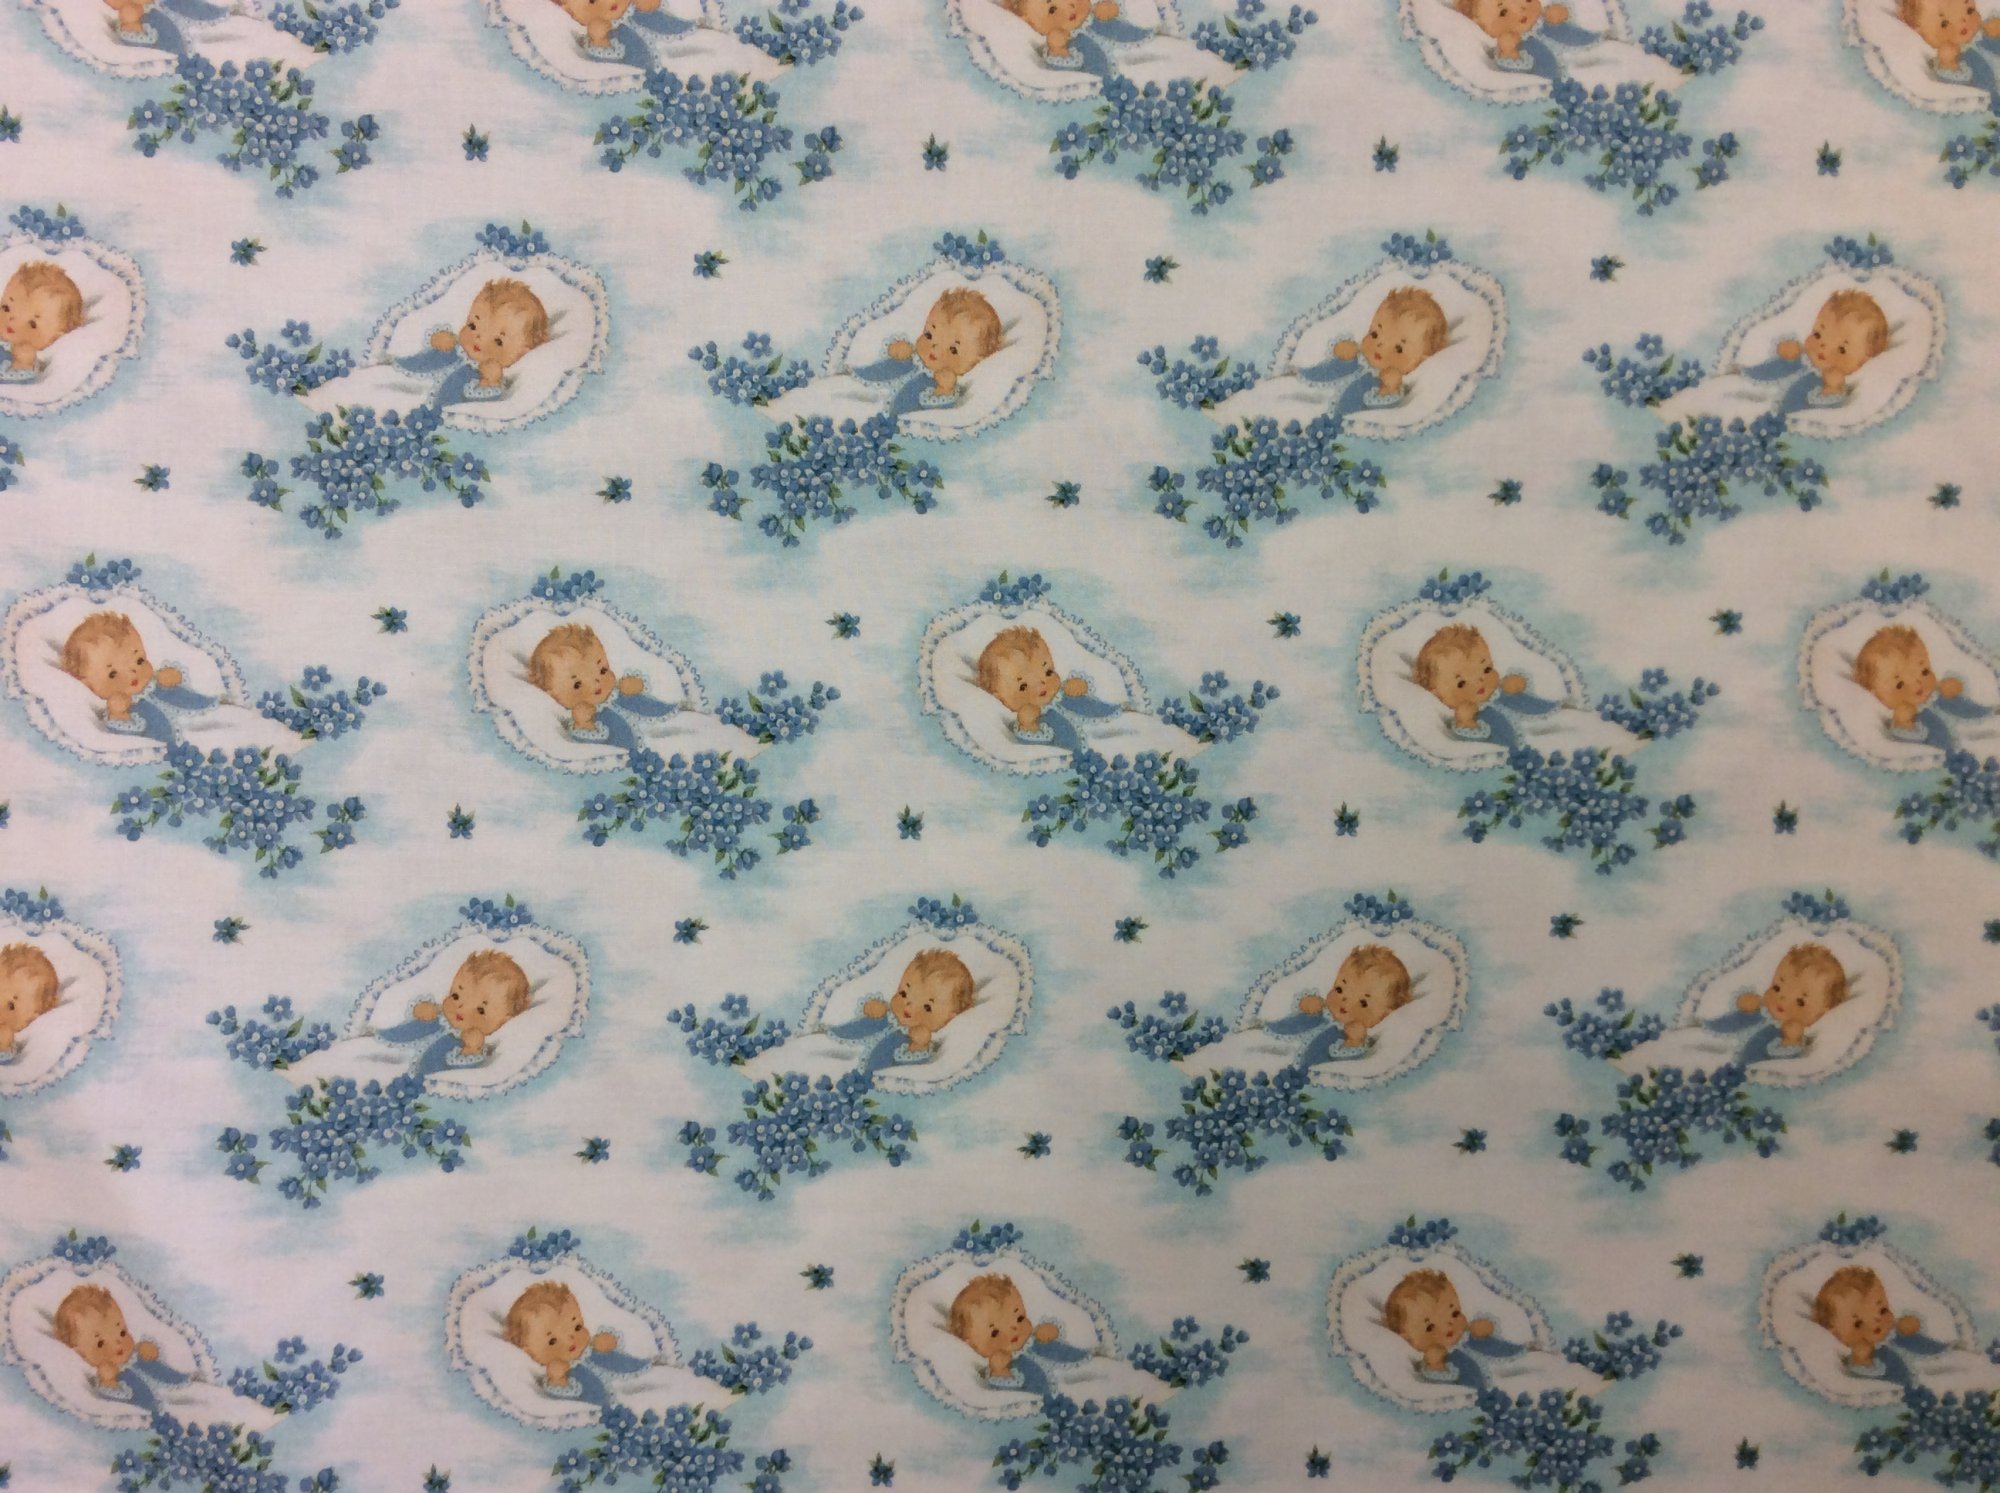 Newborn Baby Retro Wrapping Paper Baby Shower Style Cotton Quilt Fabric NT92